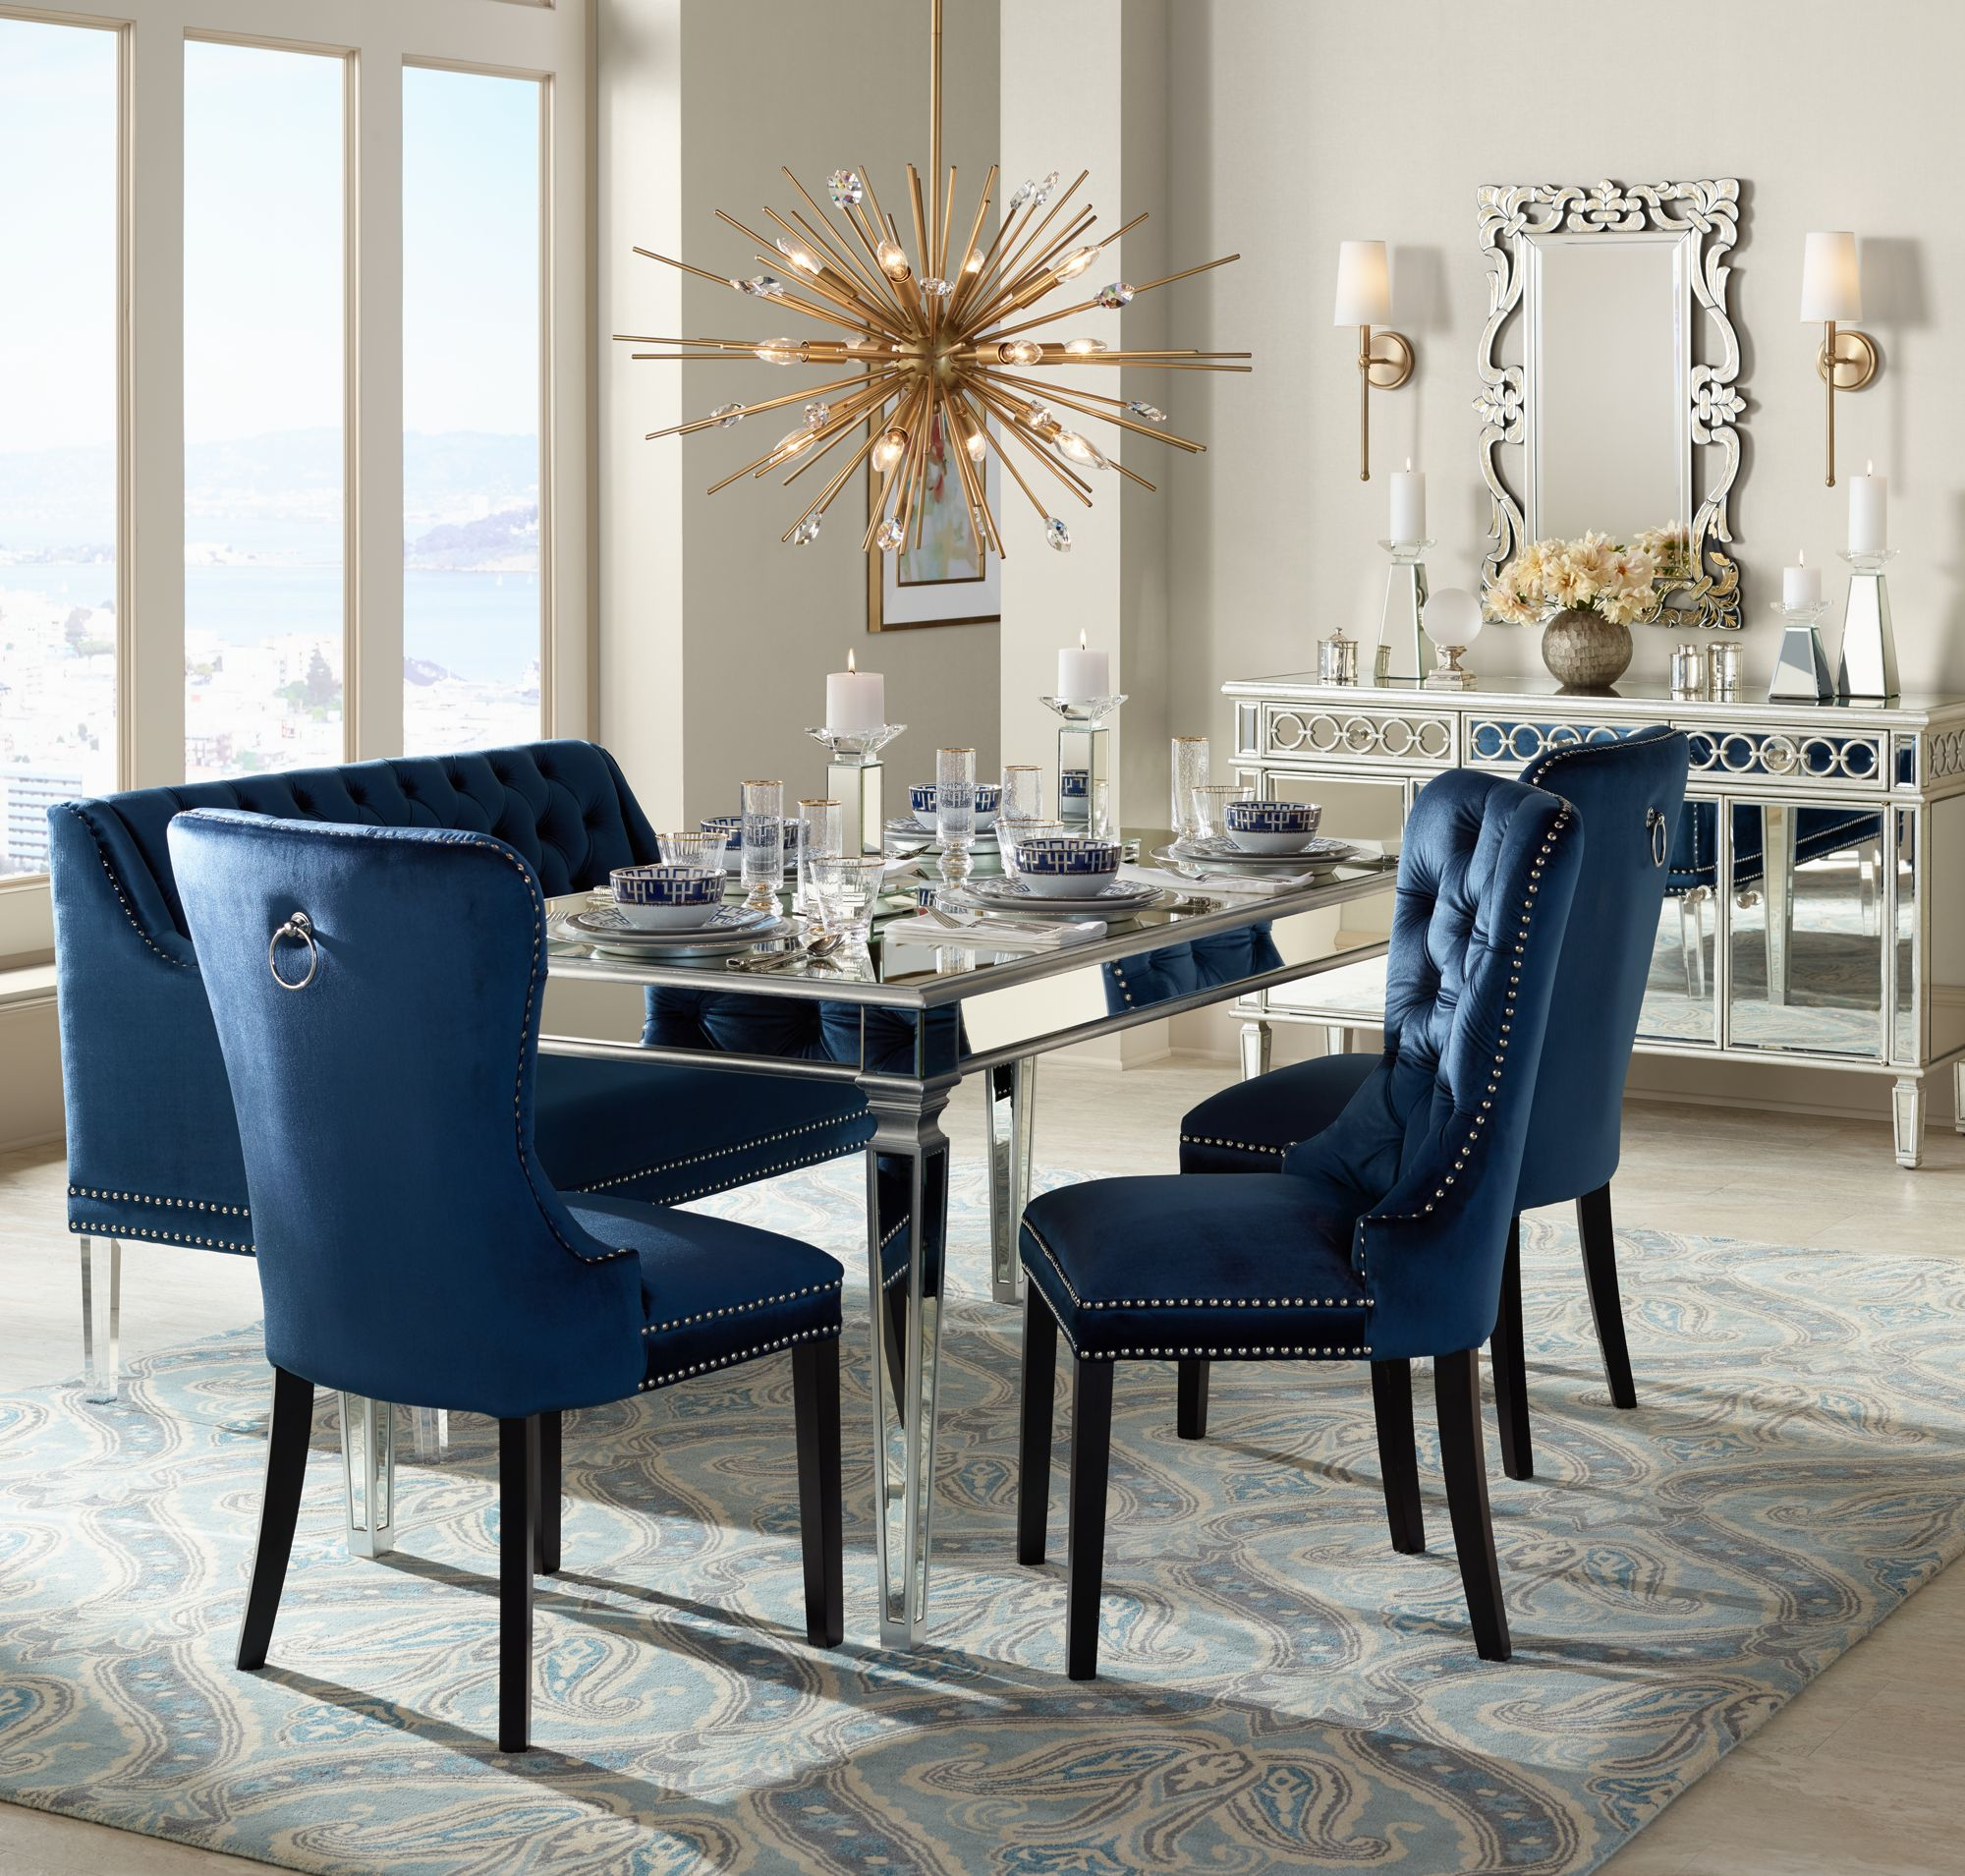 A Memorable Meal Starts With A Dining Room Thatu0027s Anything But Ordinary.